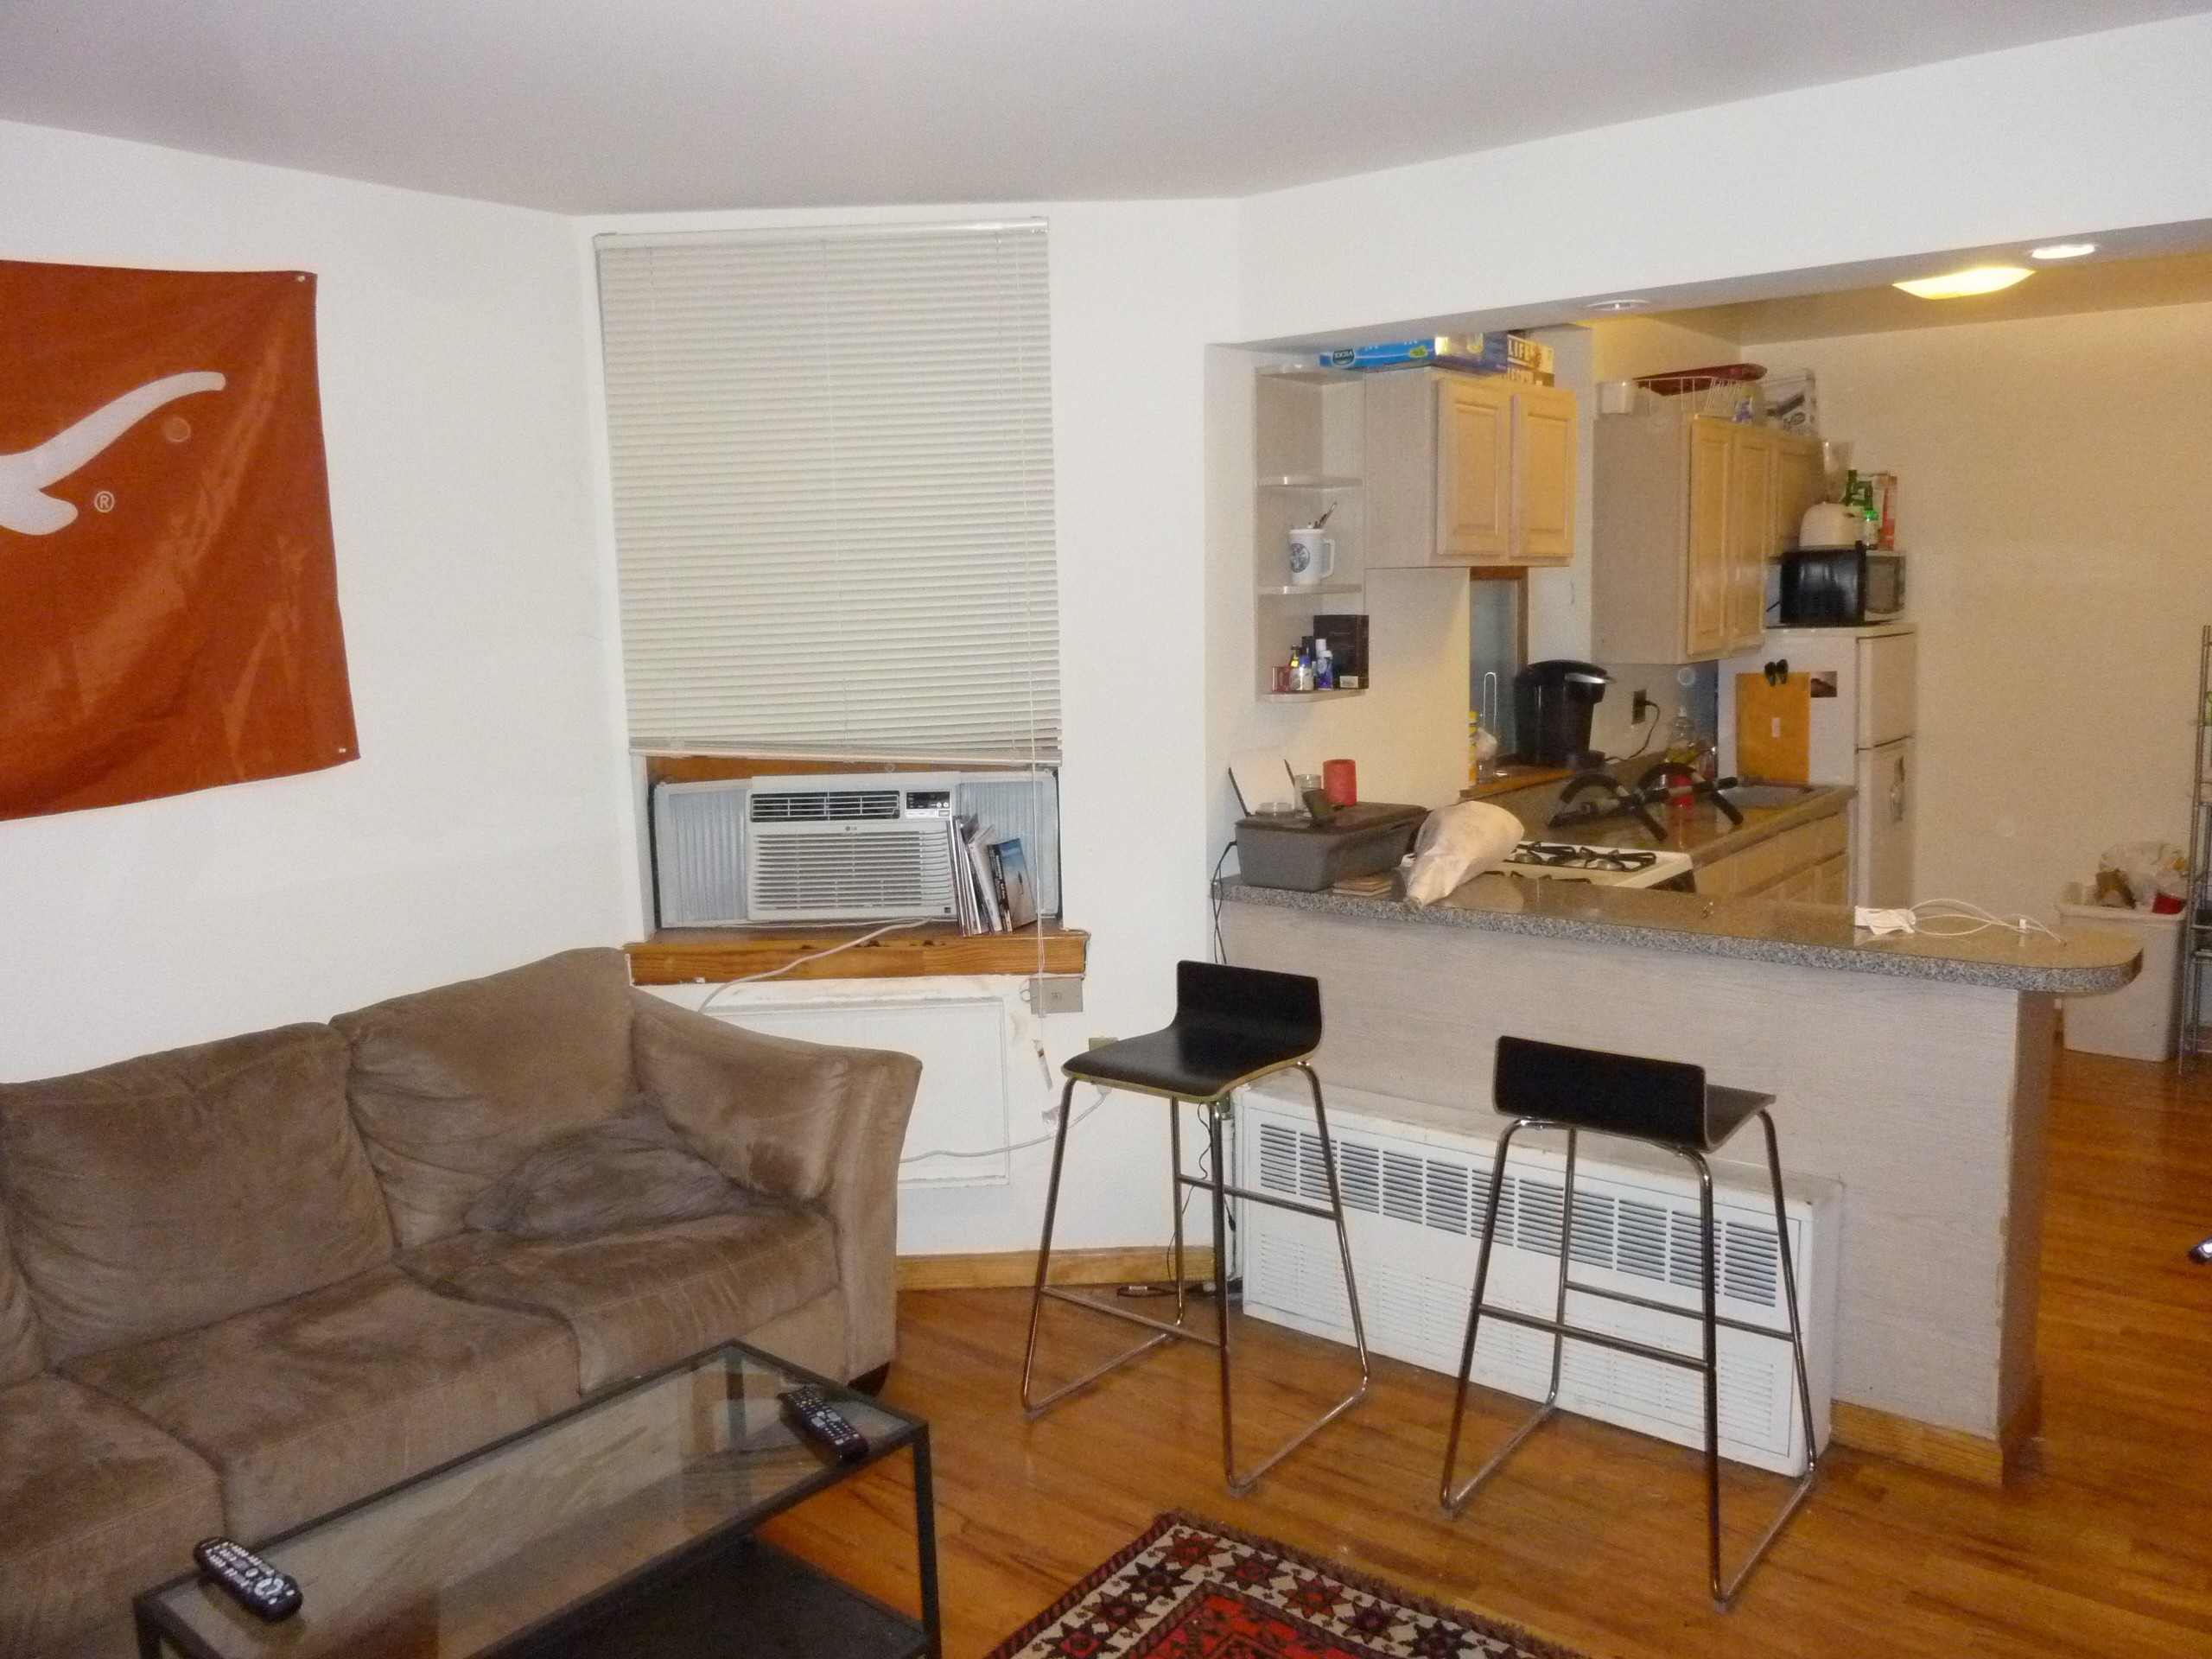 3rd Ave E 50th St New York Ny 10017 3 Bedroom Apartment For Rent For 4 120 Month Zumper